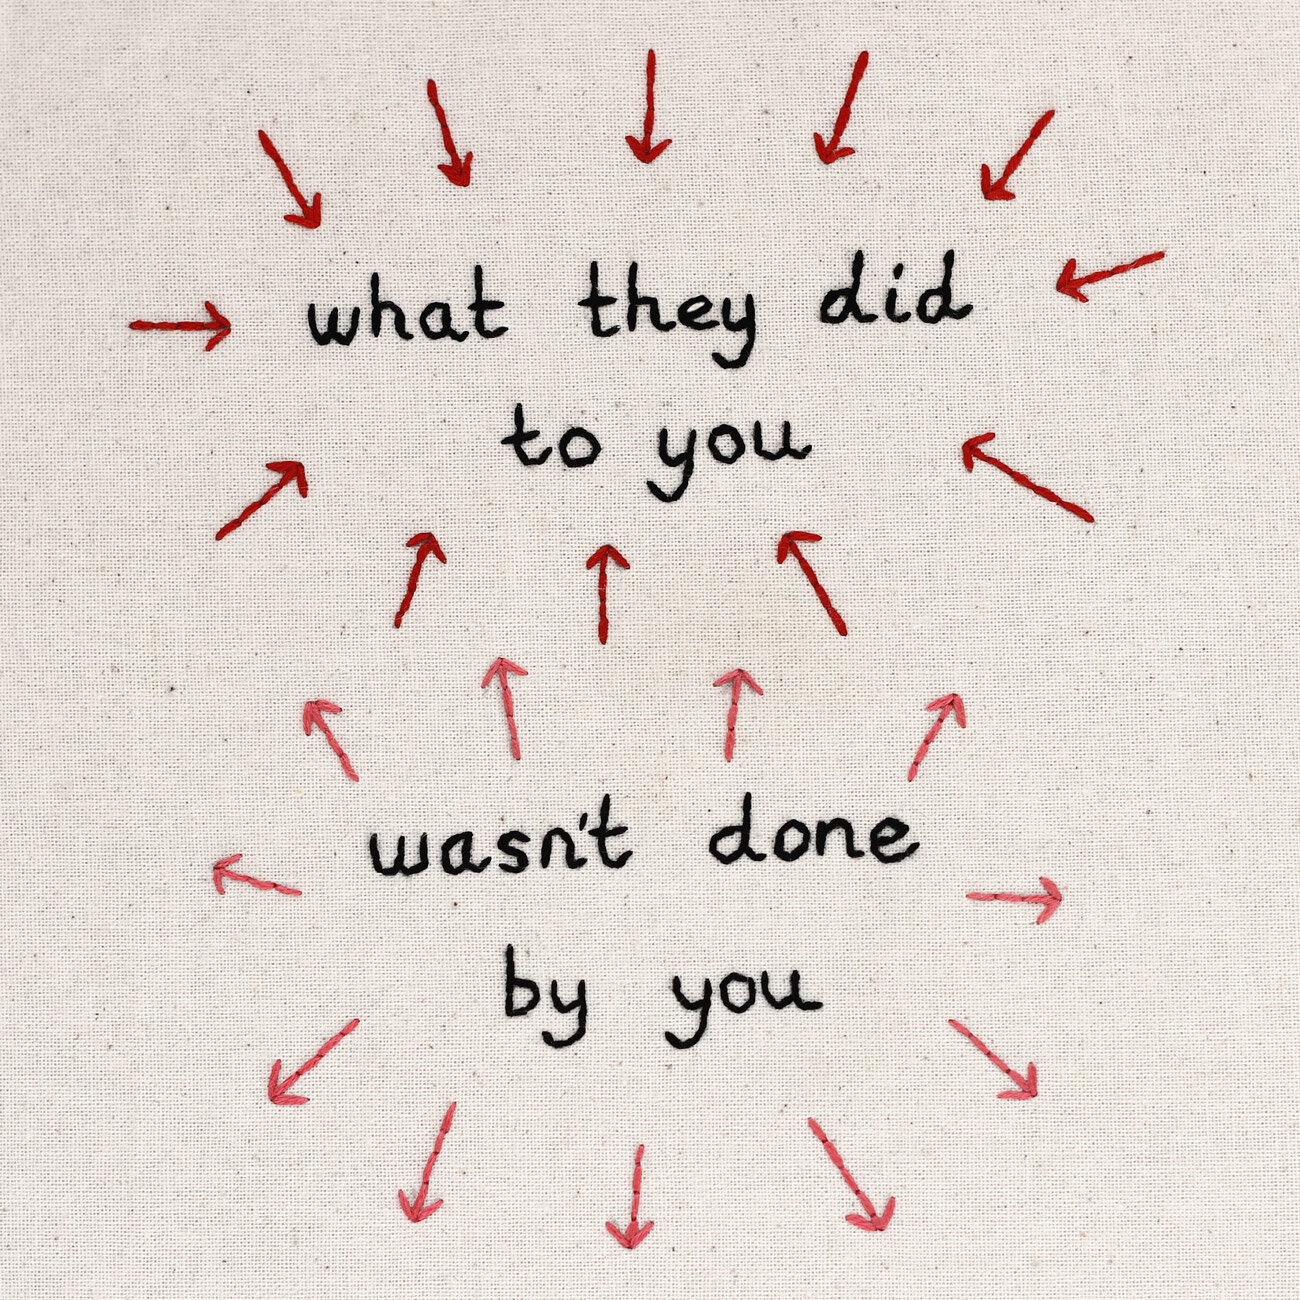 What they did to you wasn't done by you